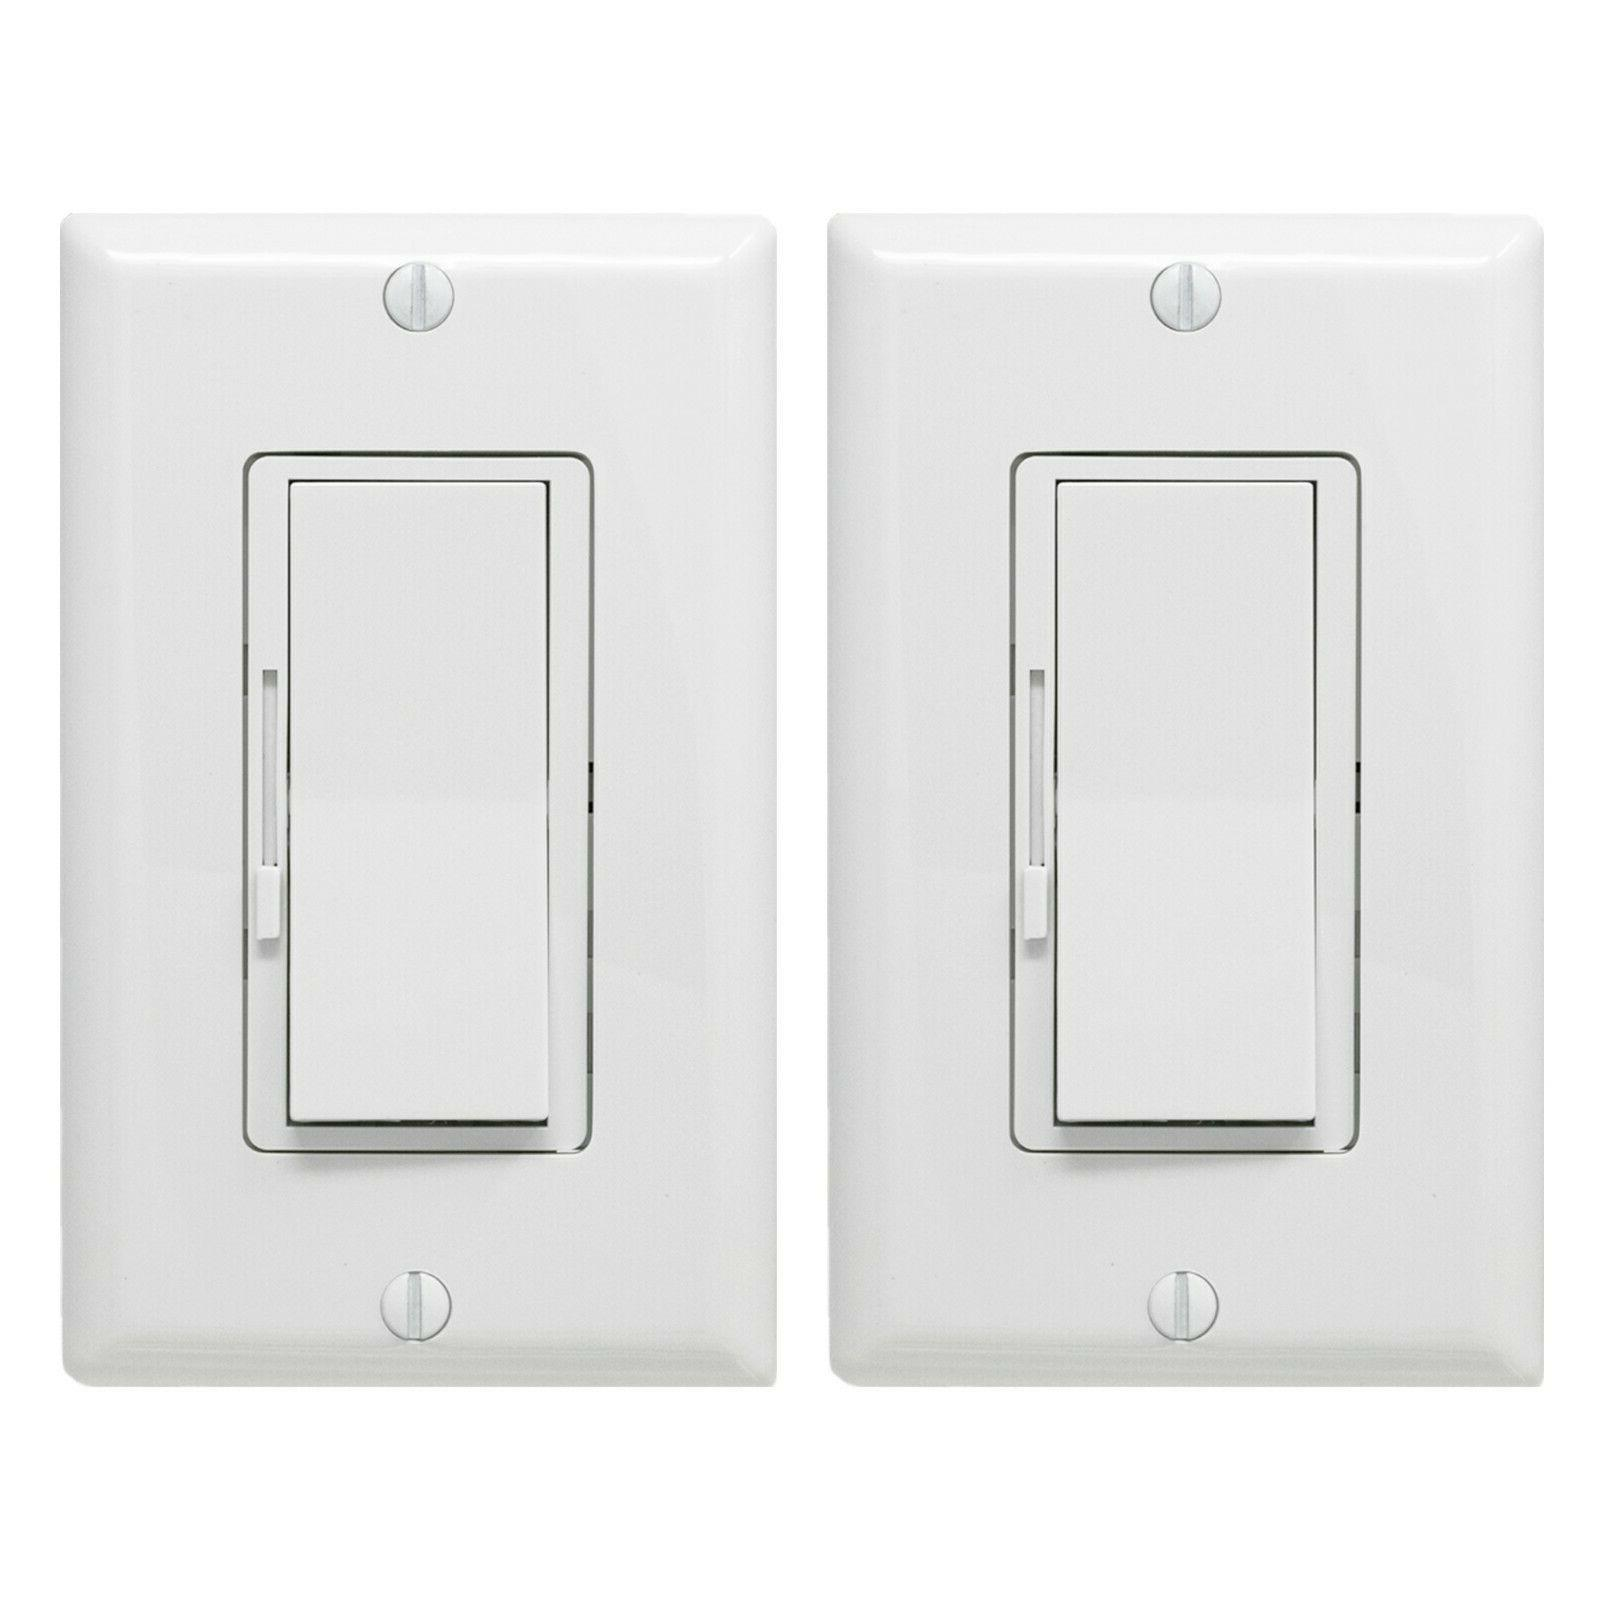 2 pack dimmer light switch single pole